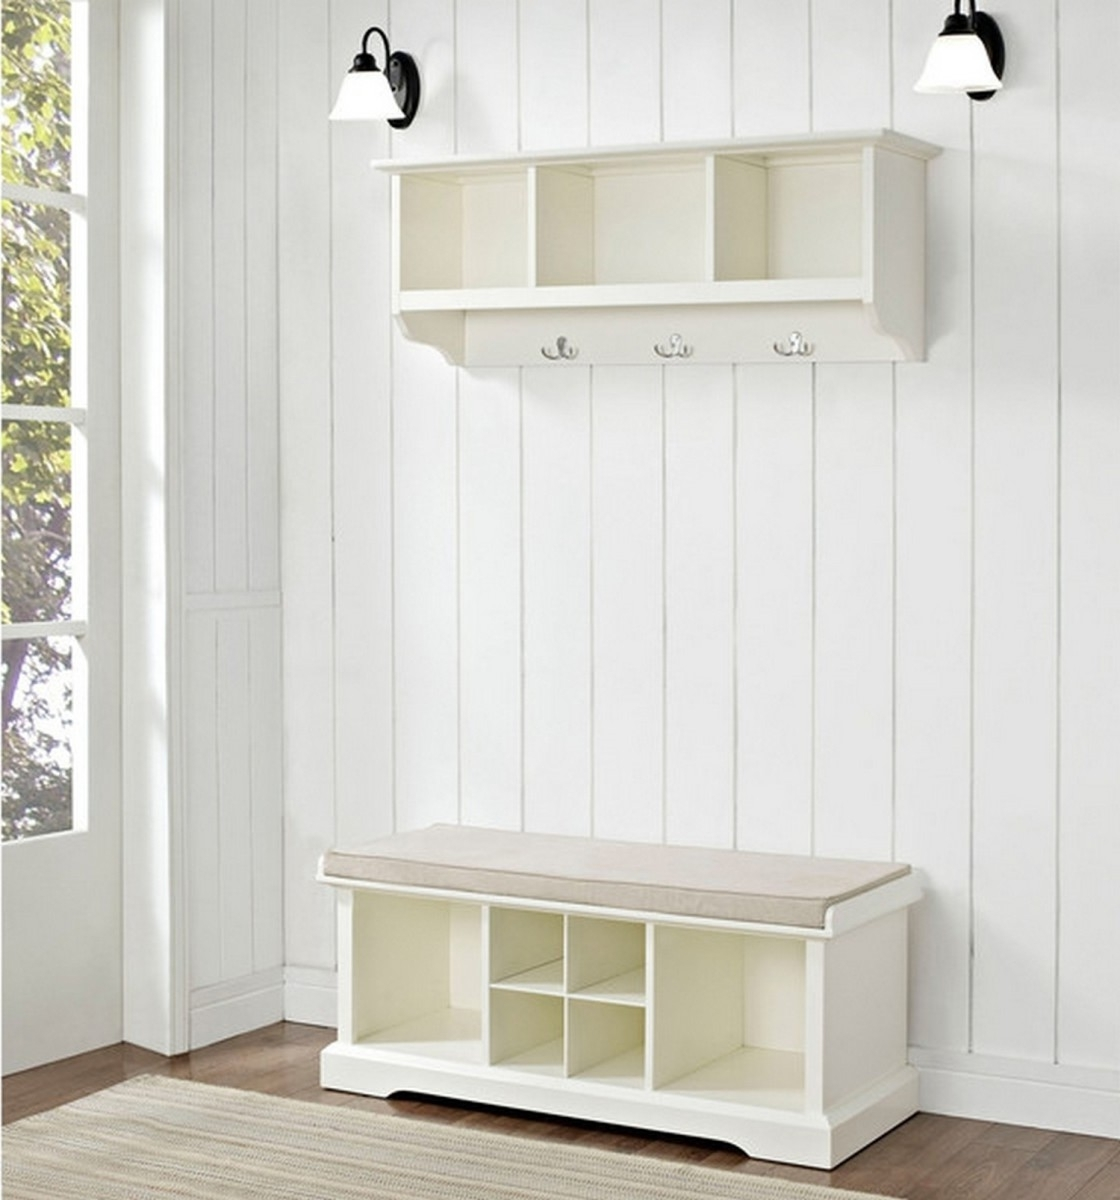 White Wicker Wardrobes Throughout Newest Image Result For Ikea Besta Wardrobe And Bench Combo Entryway (View 11 of 15)